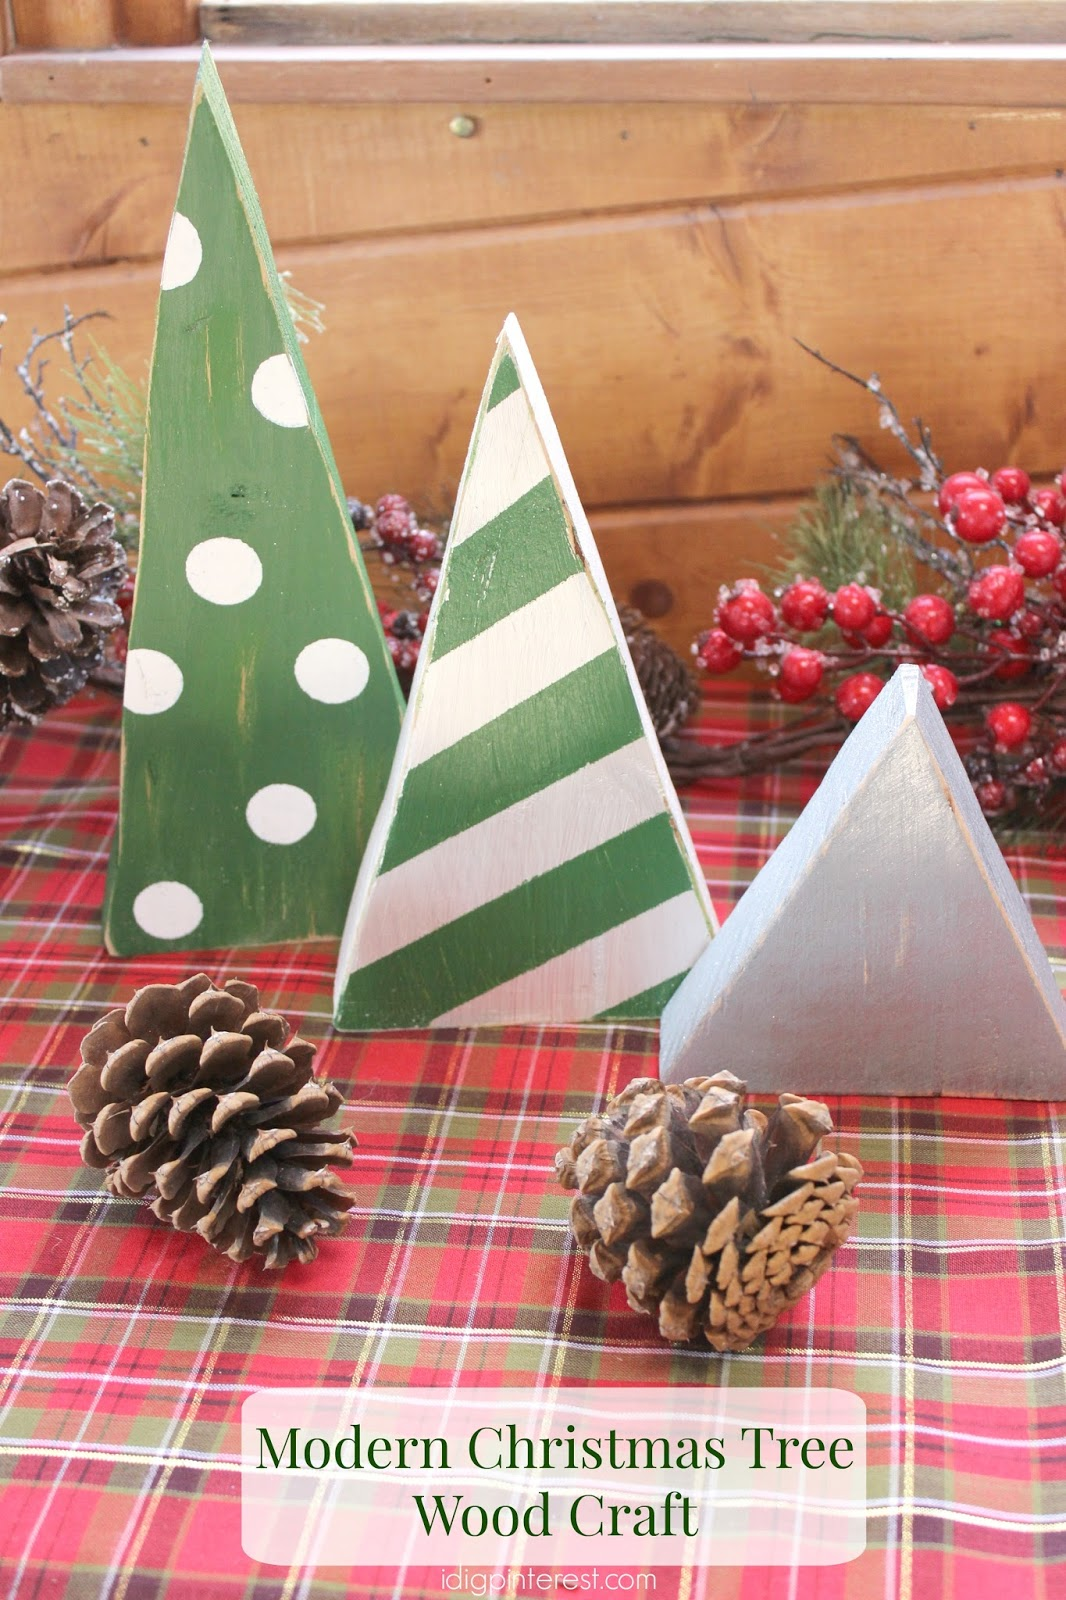 Modern Christmas Tree Wood Craft - I Dig Pinterest